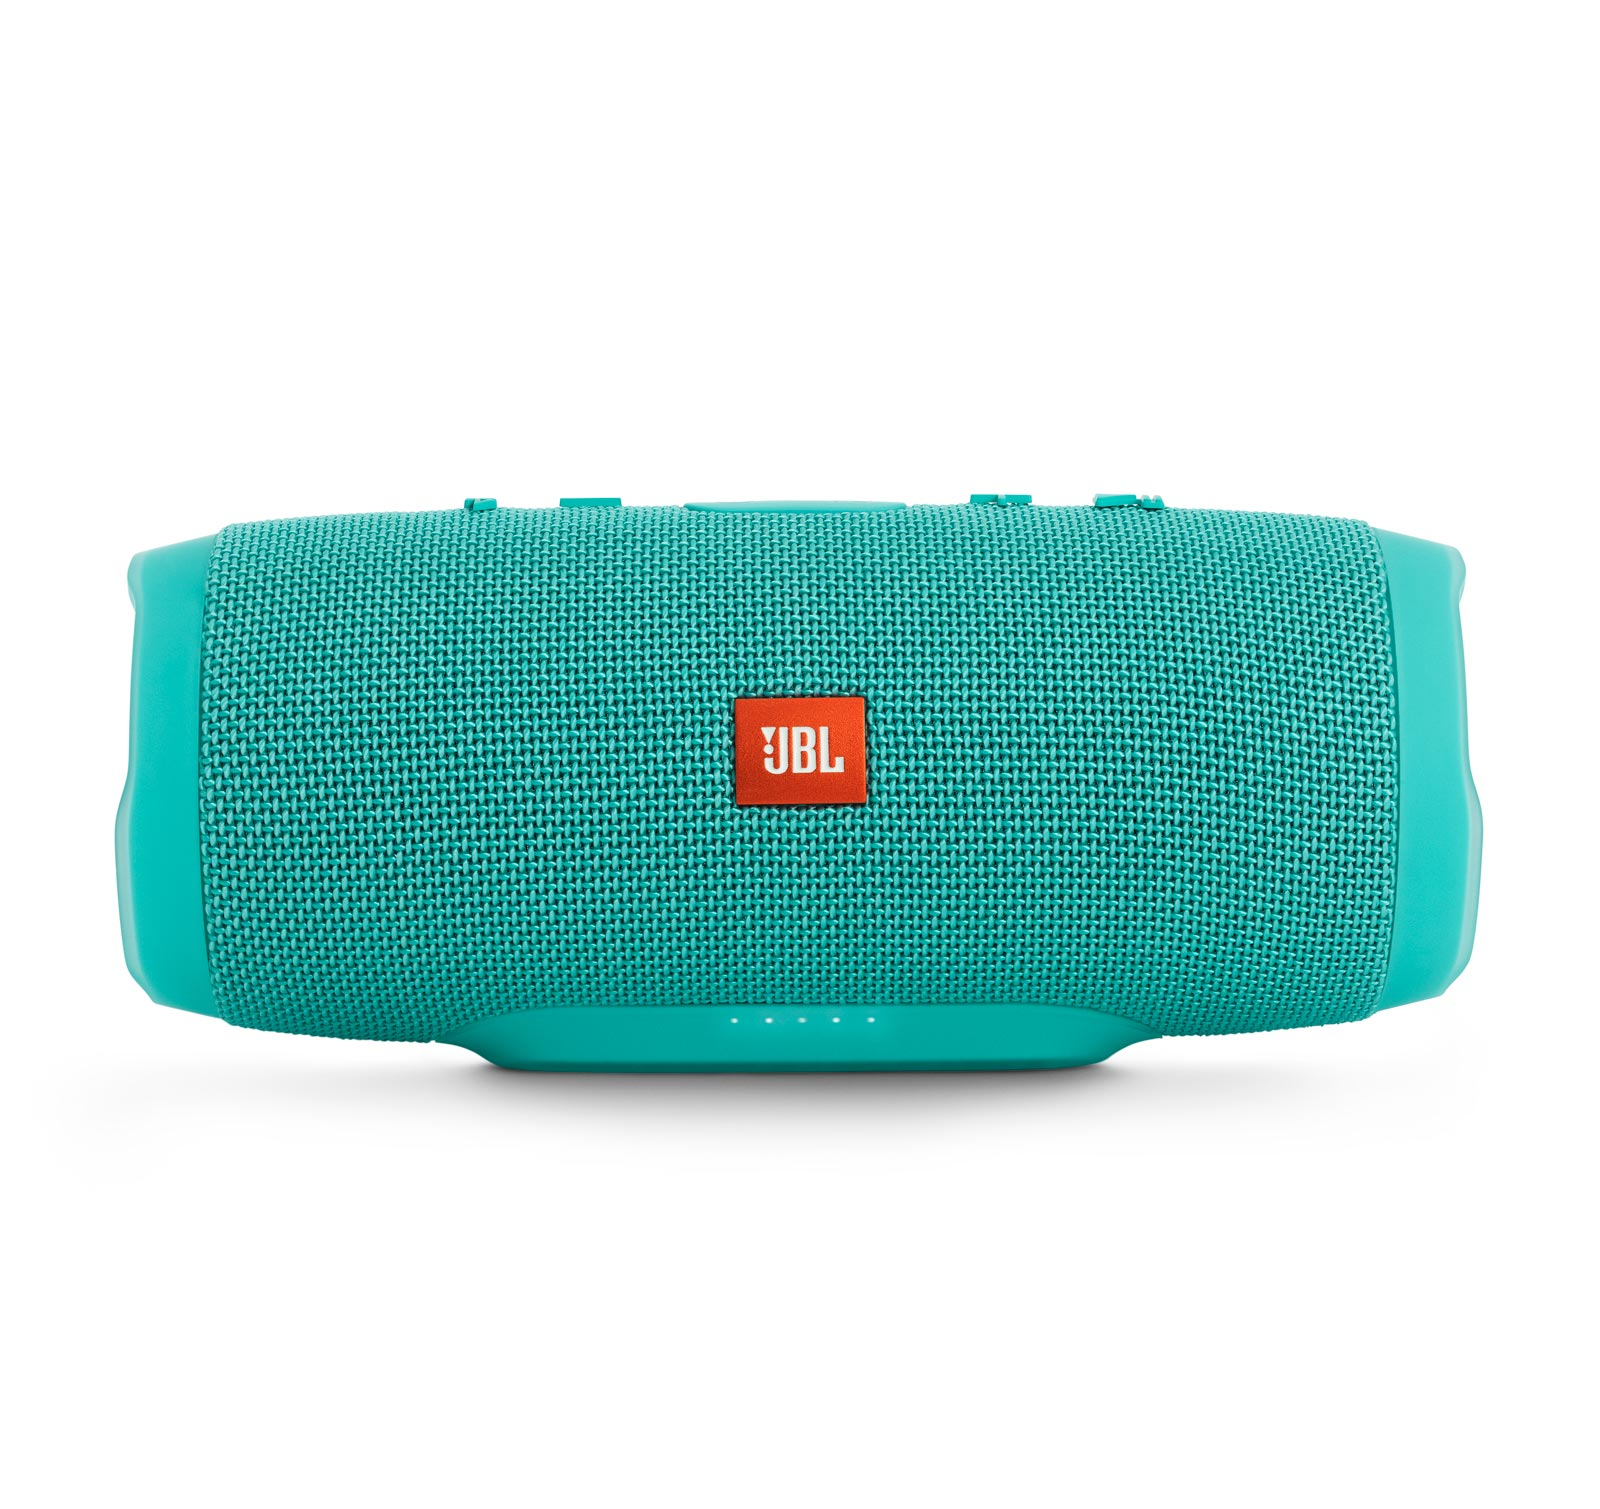 jbl charge 3 teal open box waterproof portable bluetooth speaker ebay. Black Bedroom Furniture Sets. Home Design Ideas